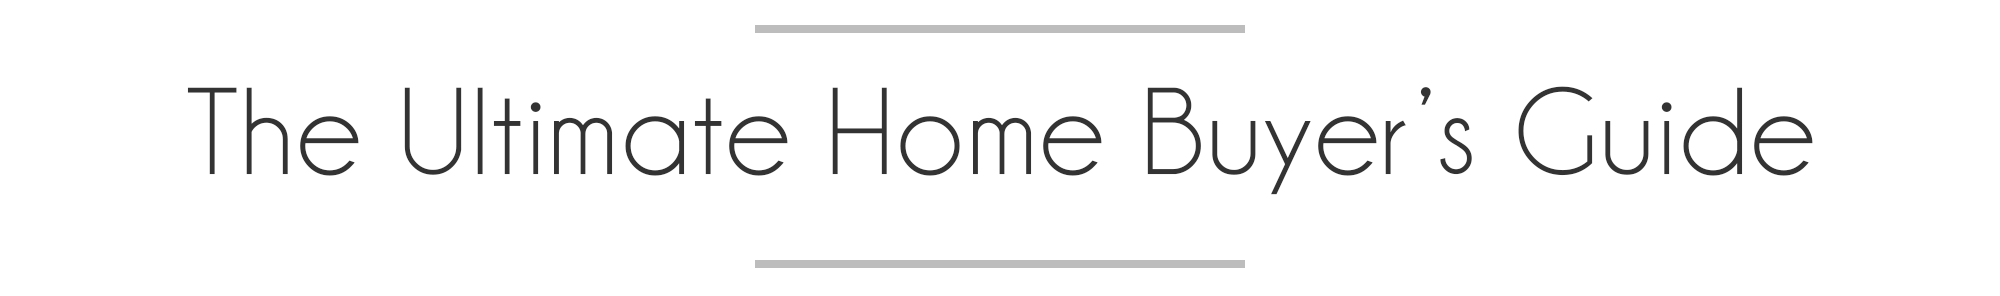 Ultimate Home Buyers Guide.png